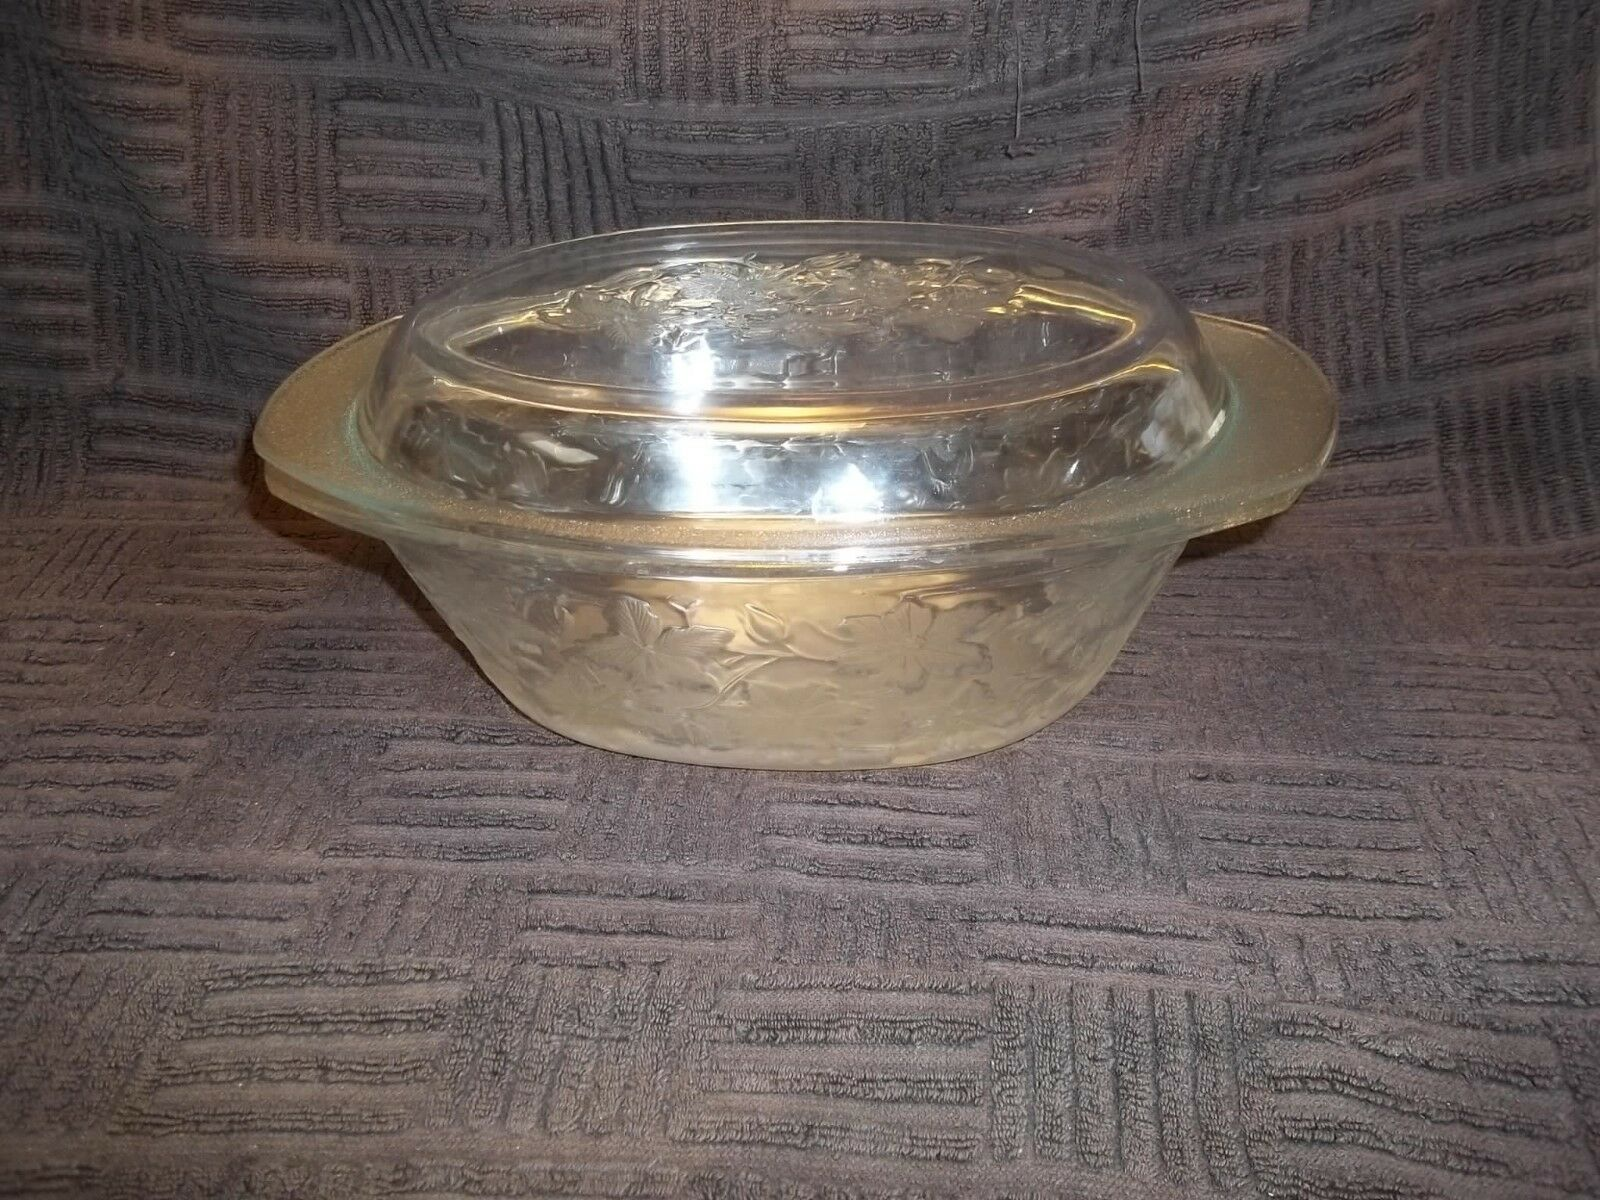 Princess house crystal fantasia 3 quart casserole 5391 for Princess housse